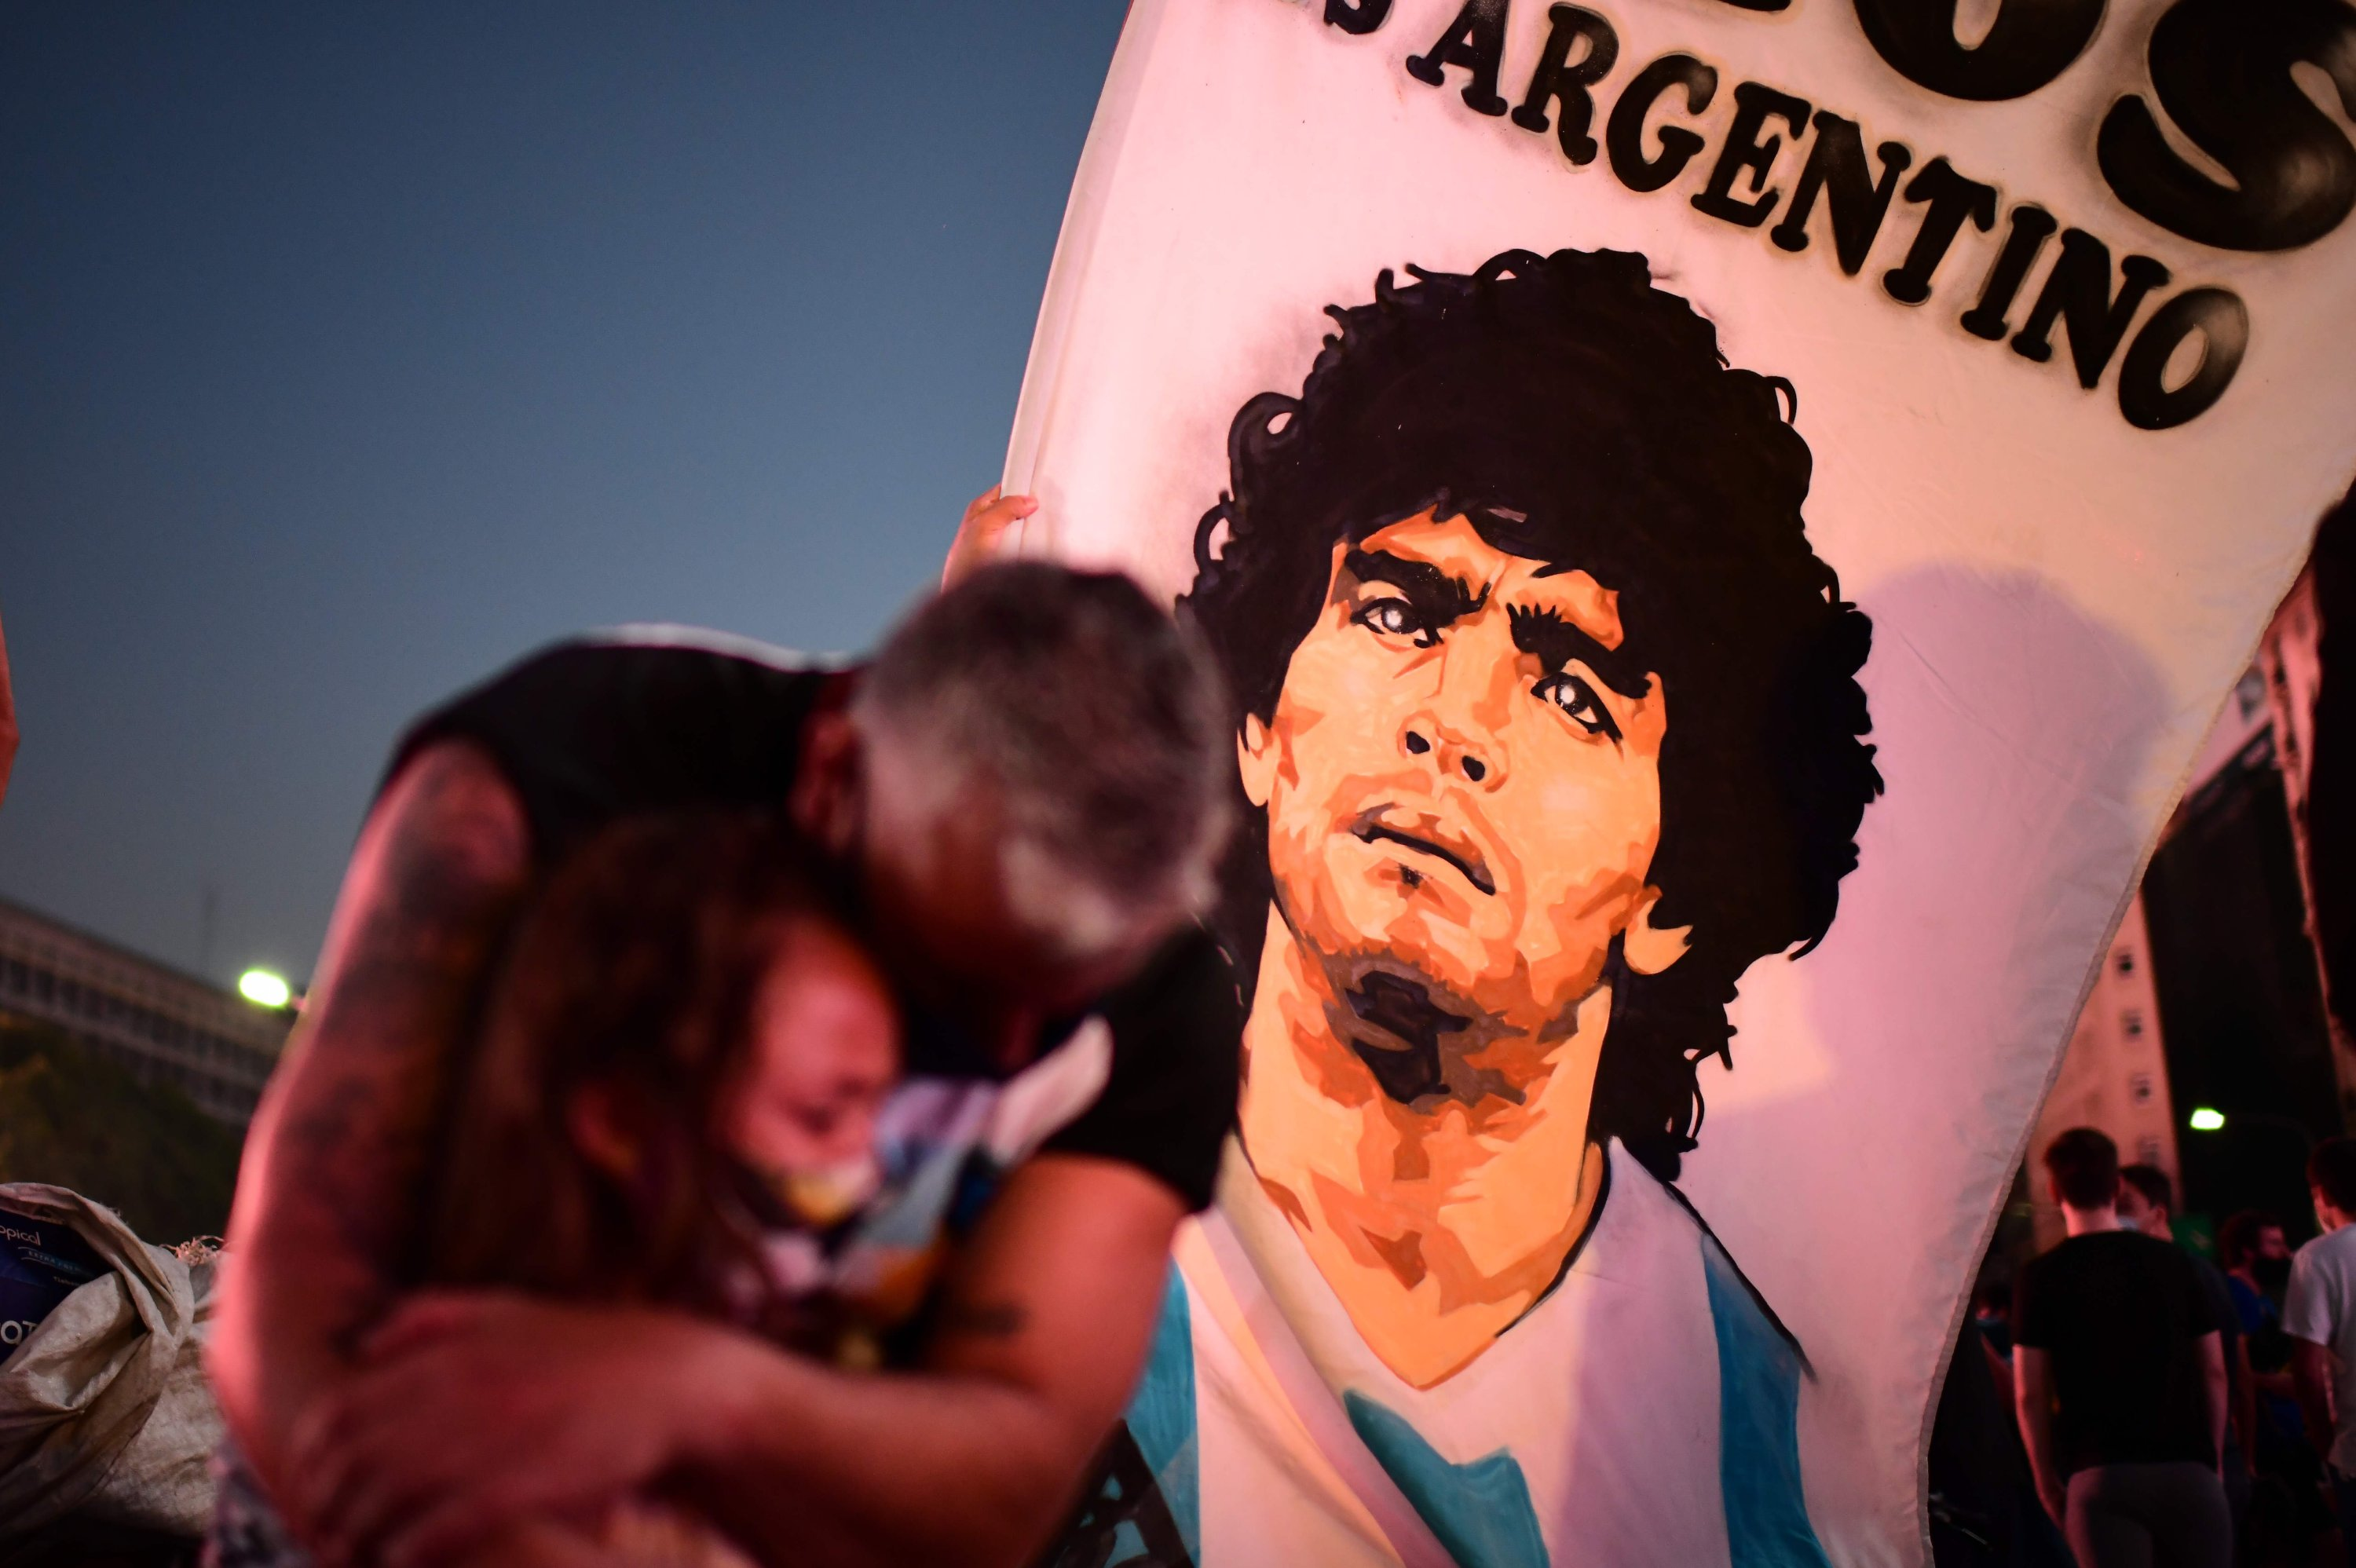 A man and his daughter, fans of Argentinian football legend Diego Maradona, mourn as they gather by the Obelisk to pay homage on the day of his death in Buenos Aires, Argentia, on Nov. 25, 2020. (AFP)